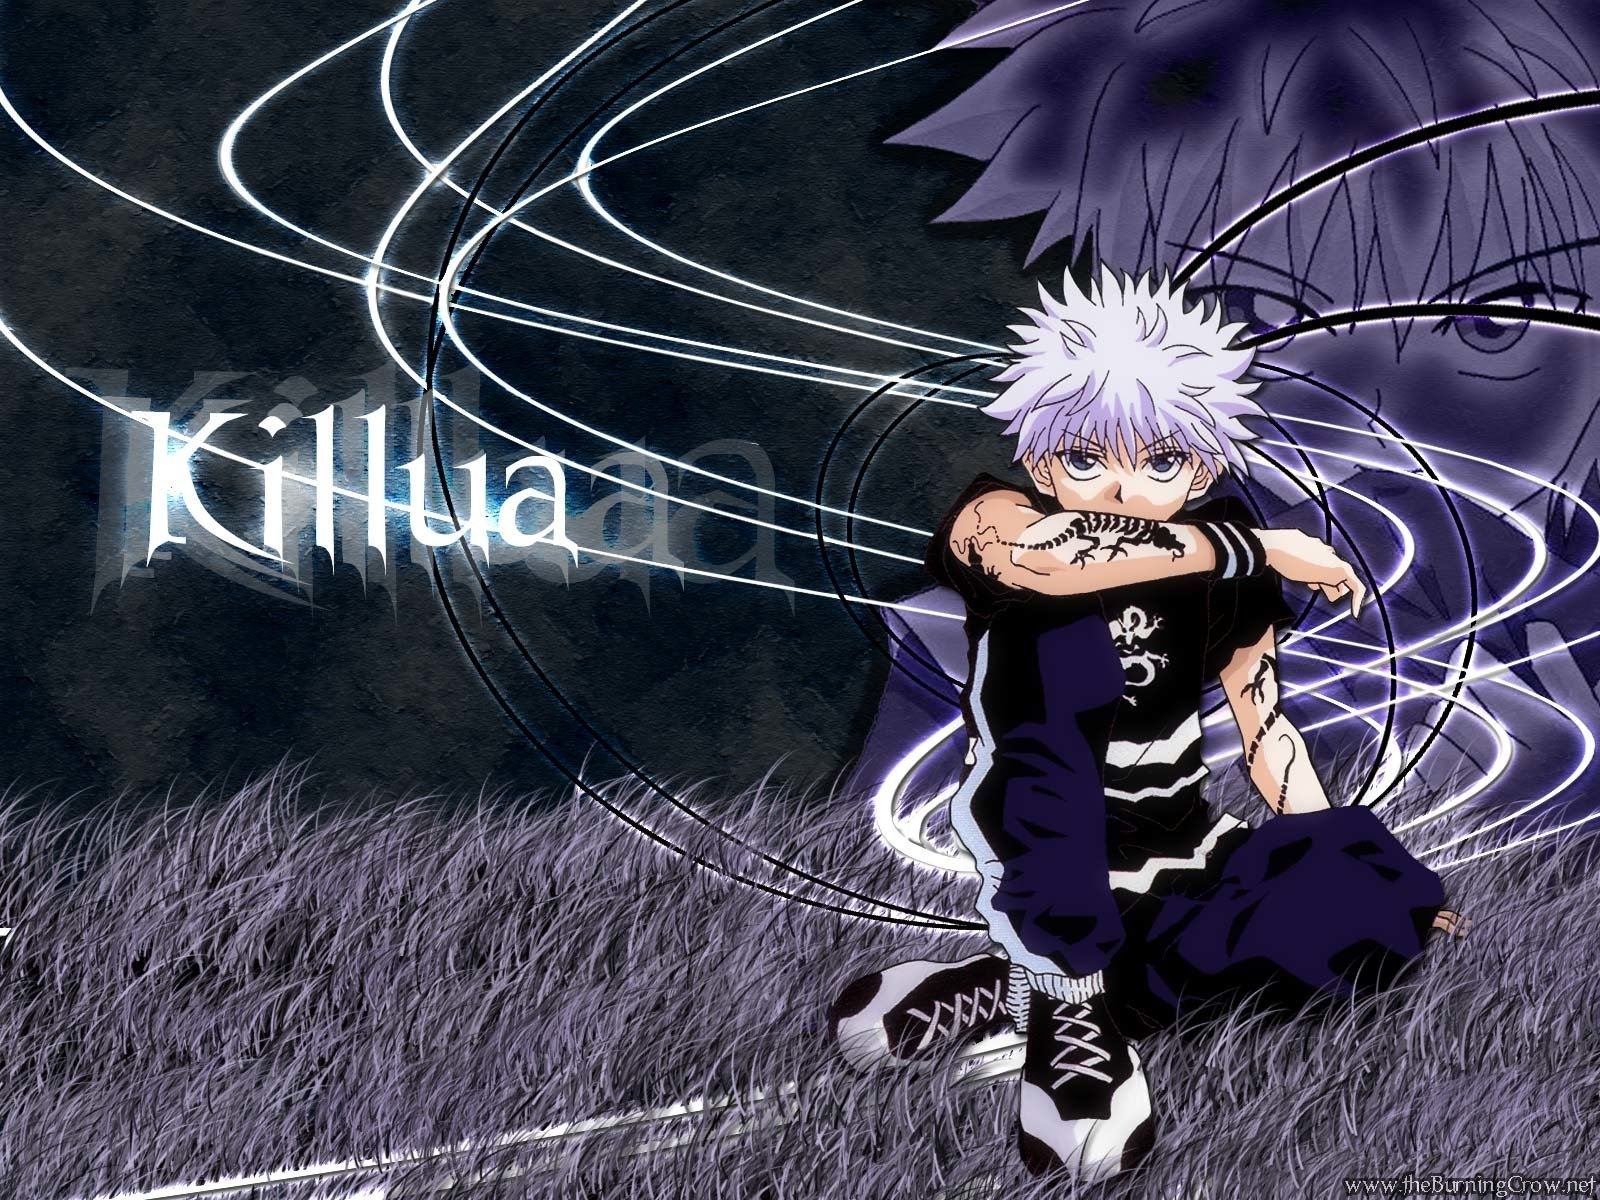 hunter x hunter wallpaper and background image | 1600x1200 | id:231254